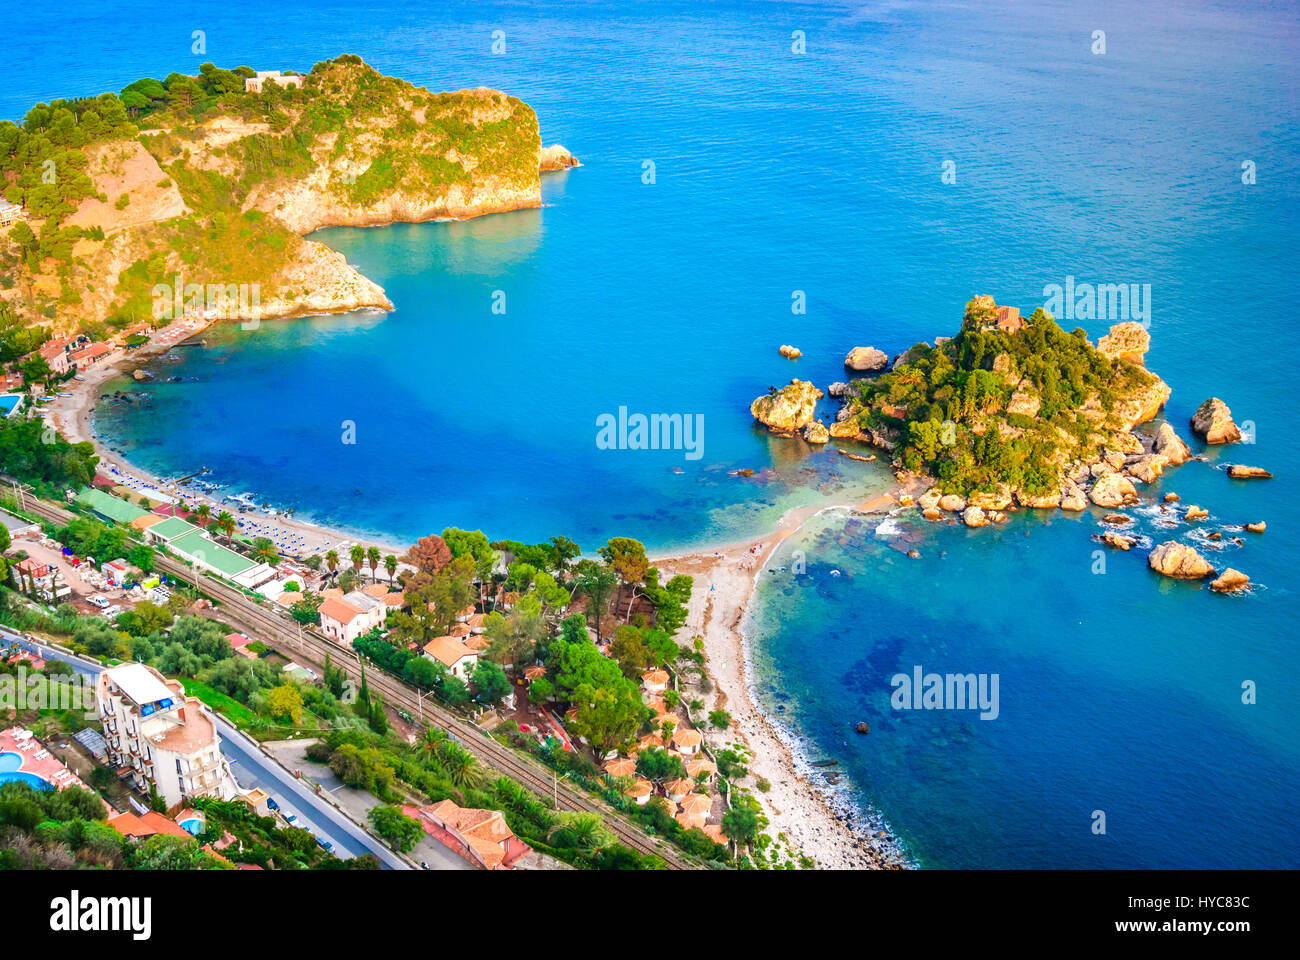 Taormina, Sicily. Sicilian seascape with beach and island Isola Bella in Italy. - Stock Image